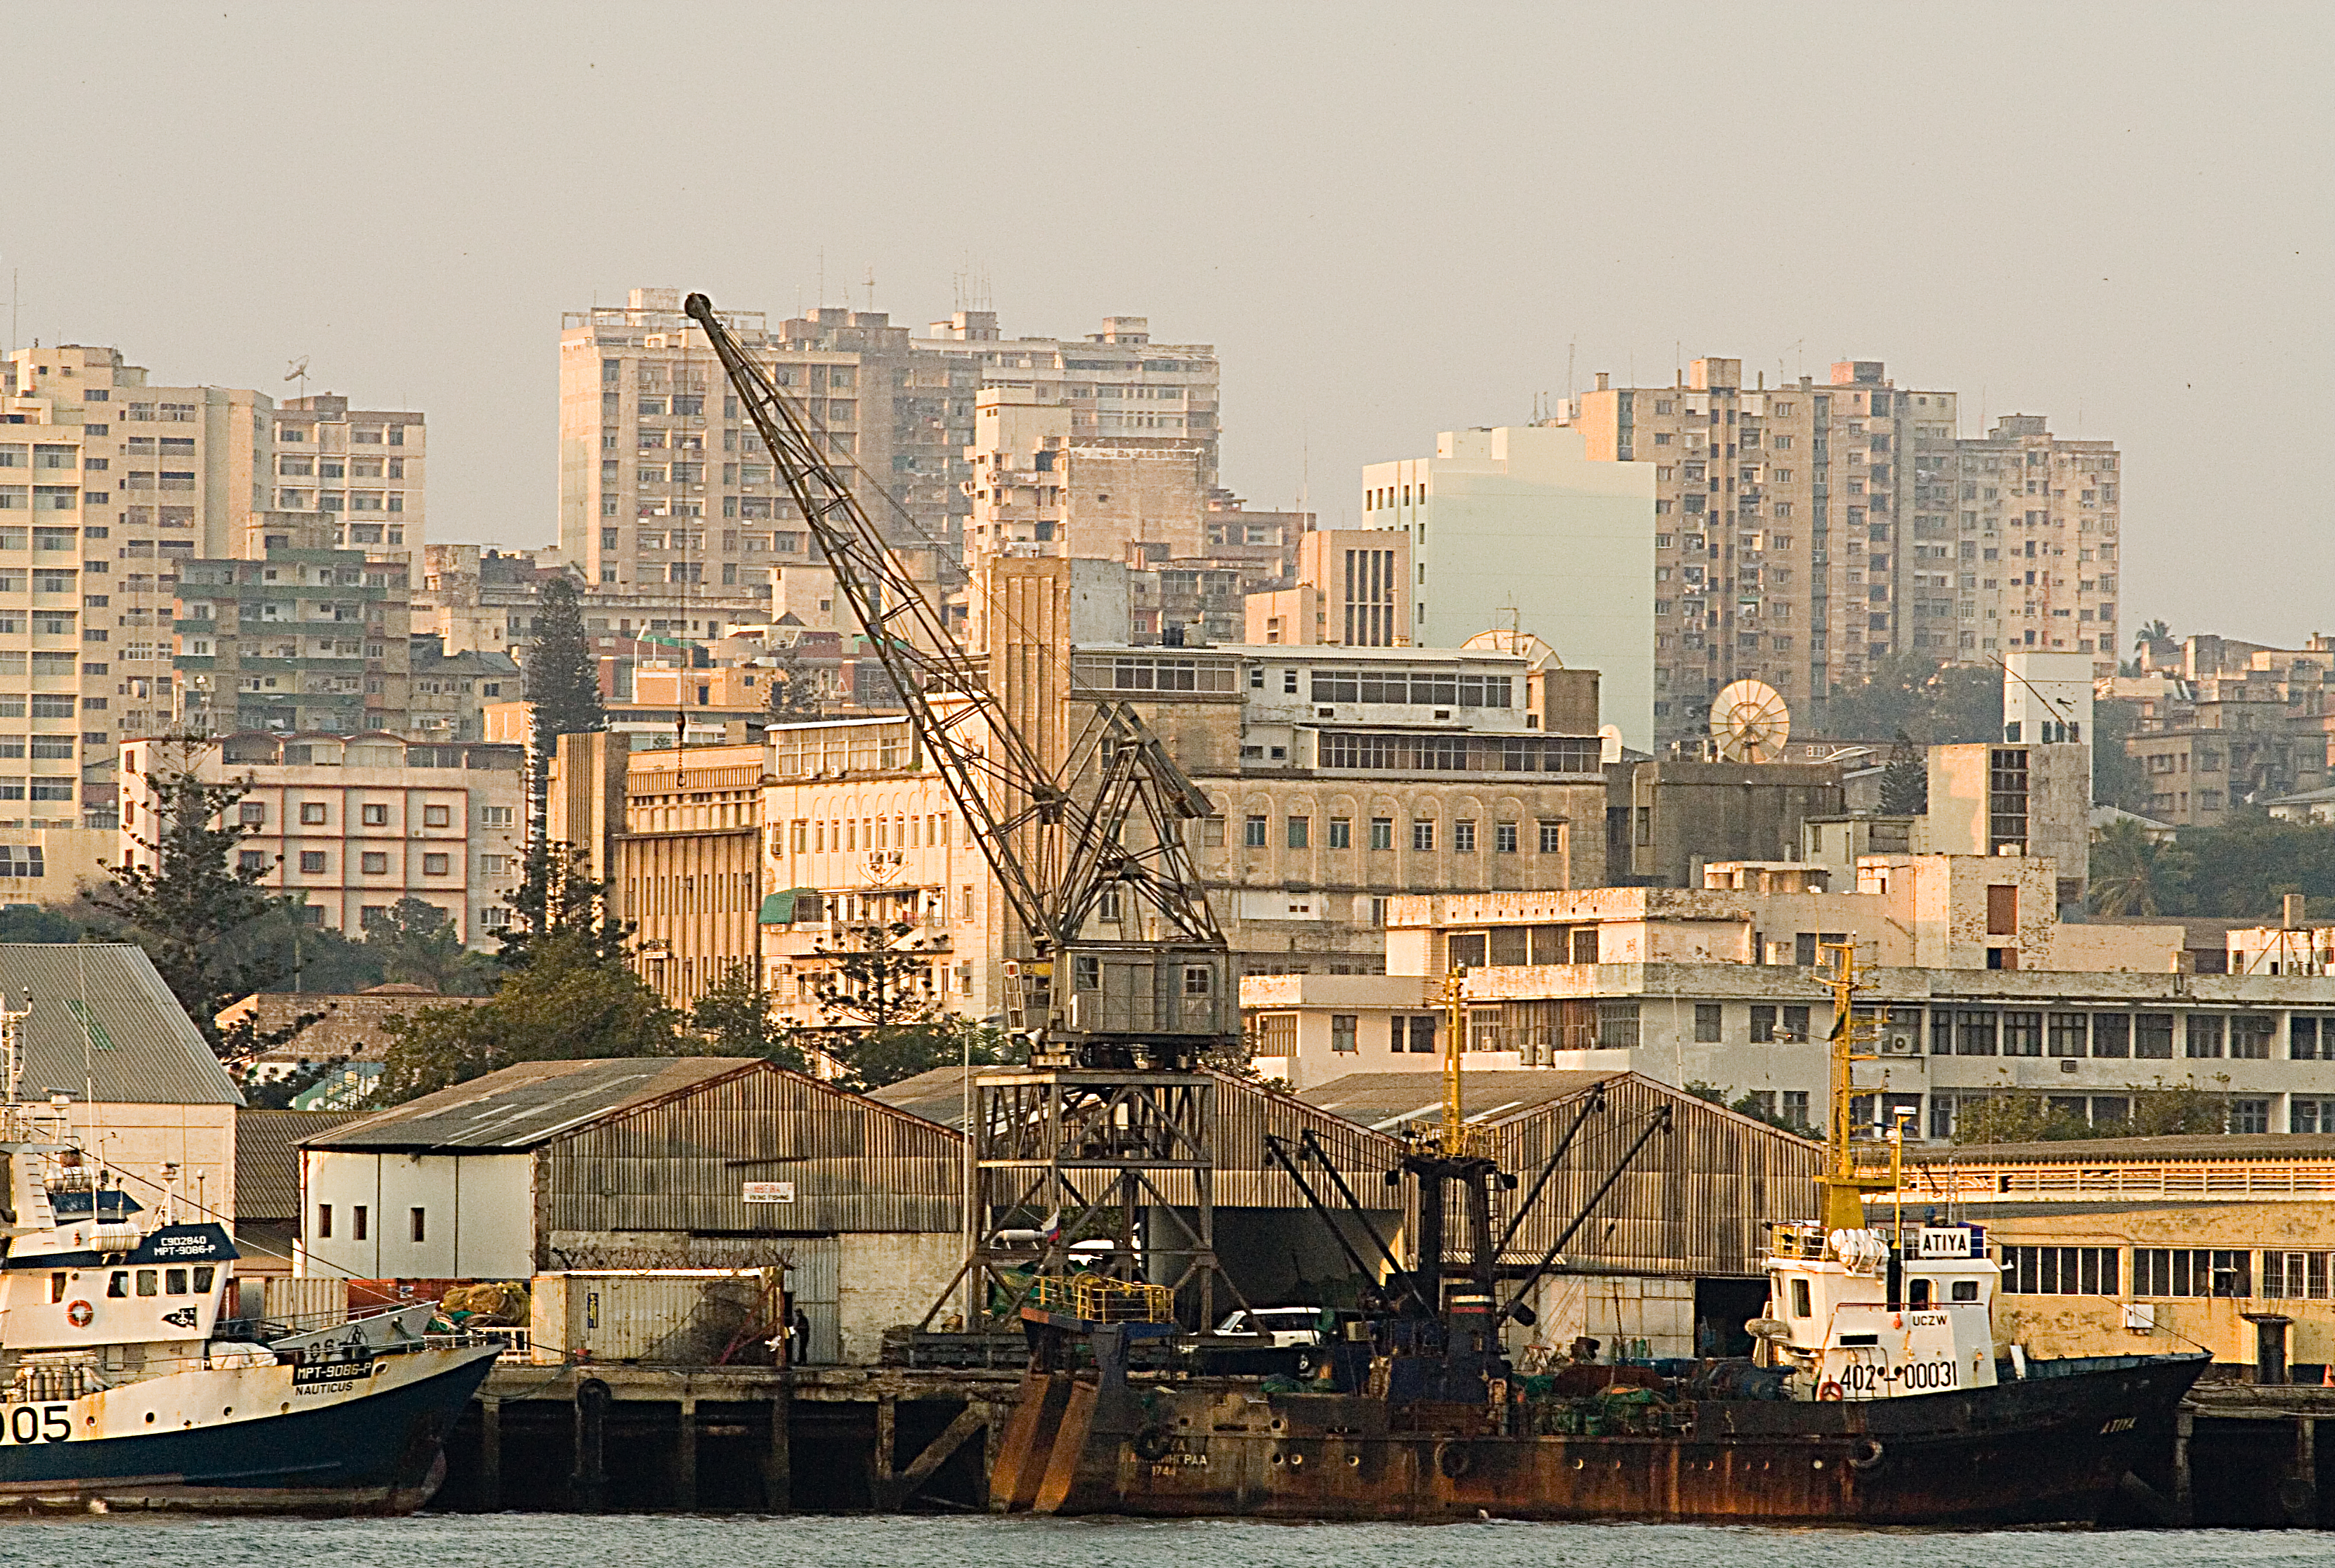 File:Maputo skyline 2006.jpg - Wikipedia